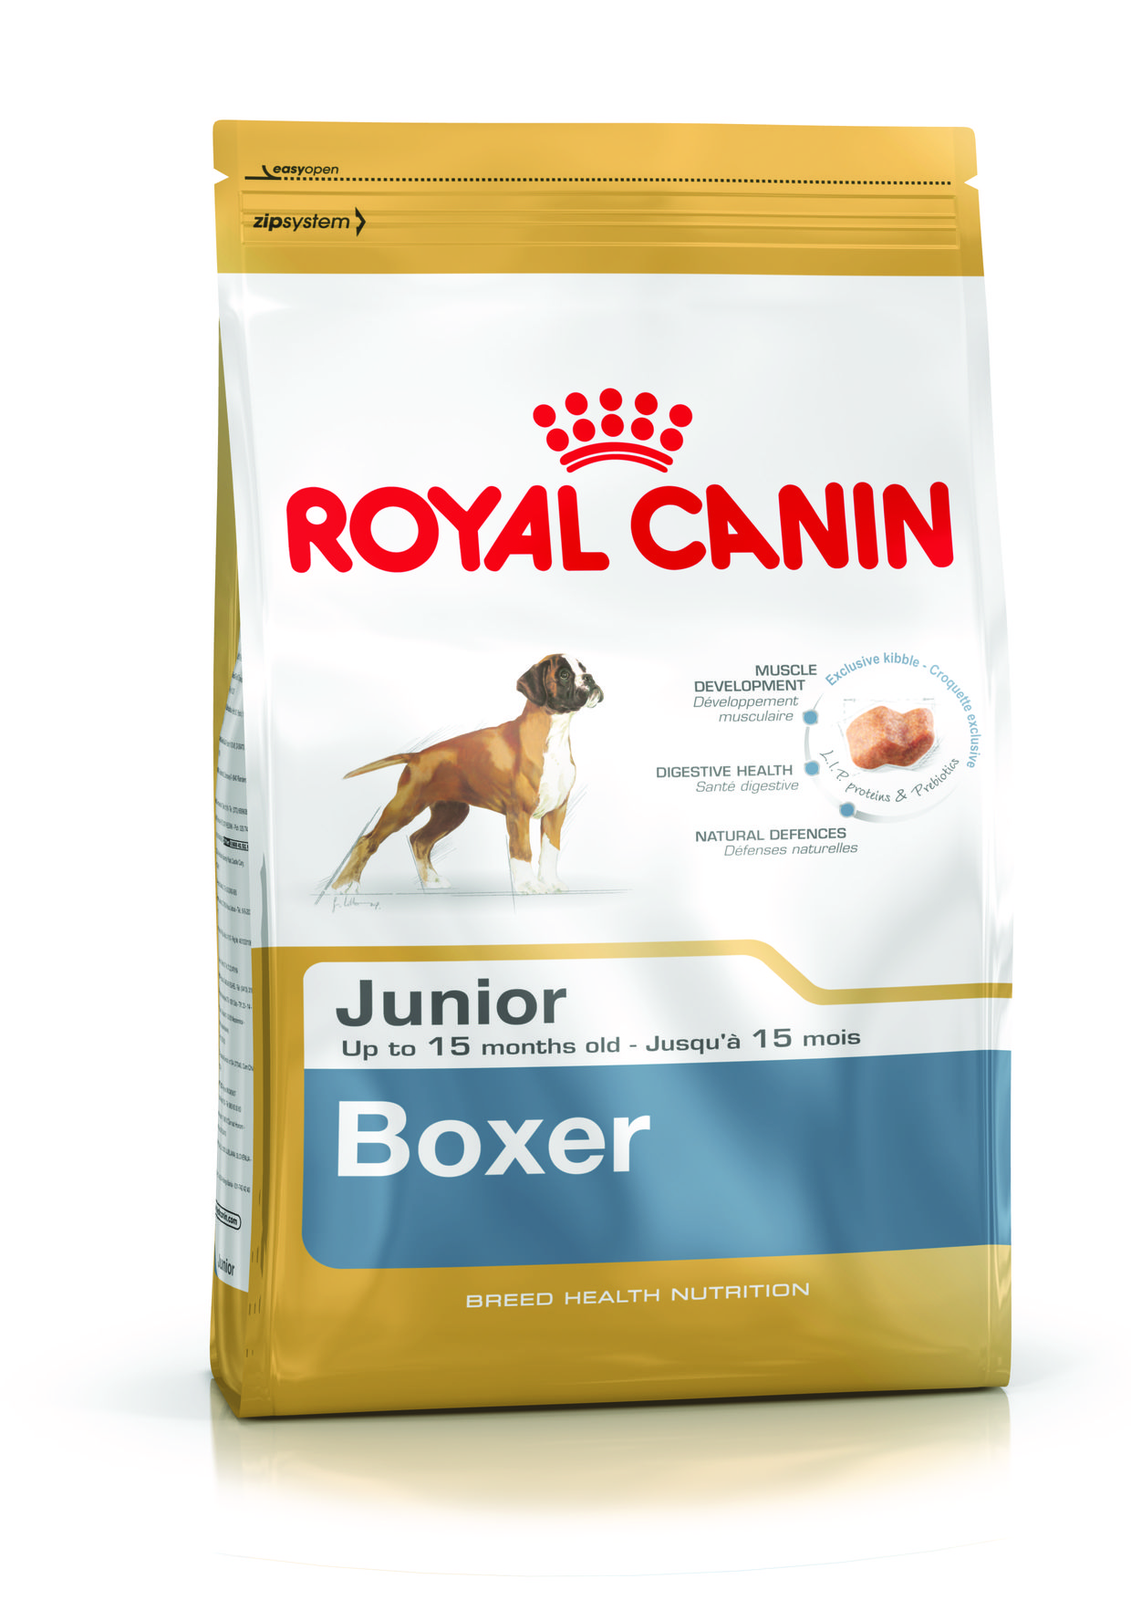 1492027249boxer-junior.jpg